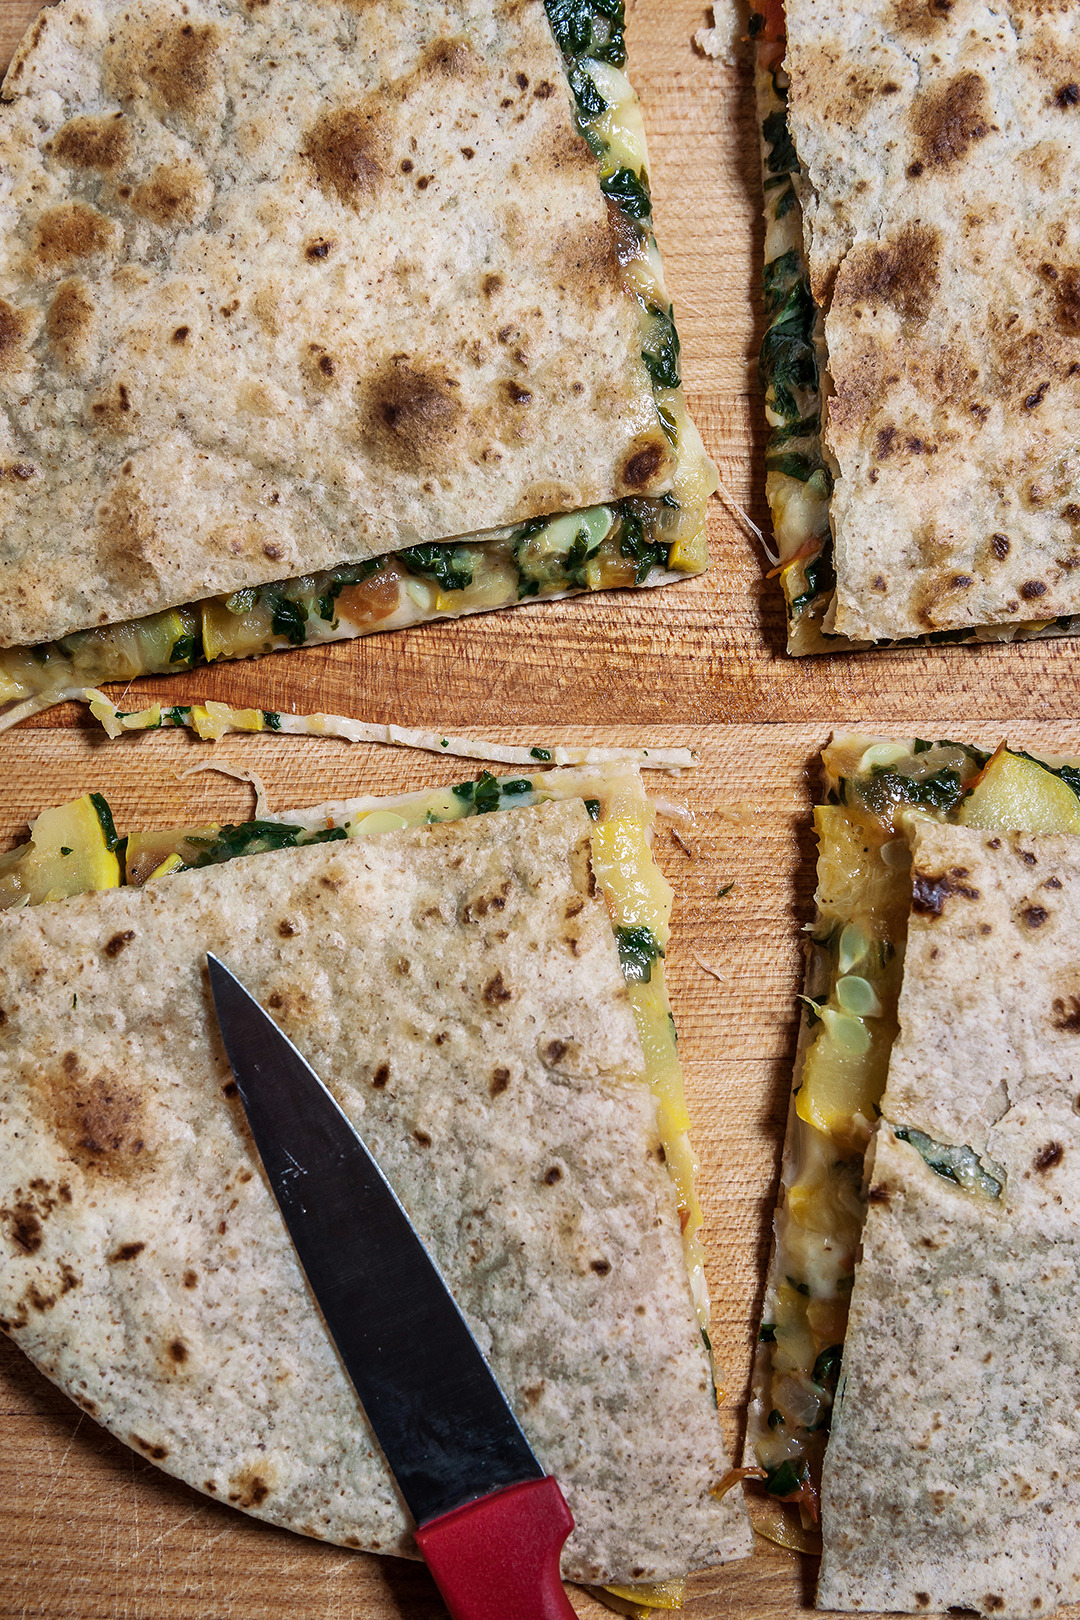 Vegetable and Cheese Quesadillas (Tortillas Filled with Mozzarella, Spinach, and Squash) - Gourmet: August 1987